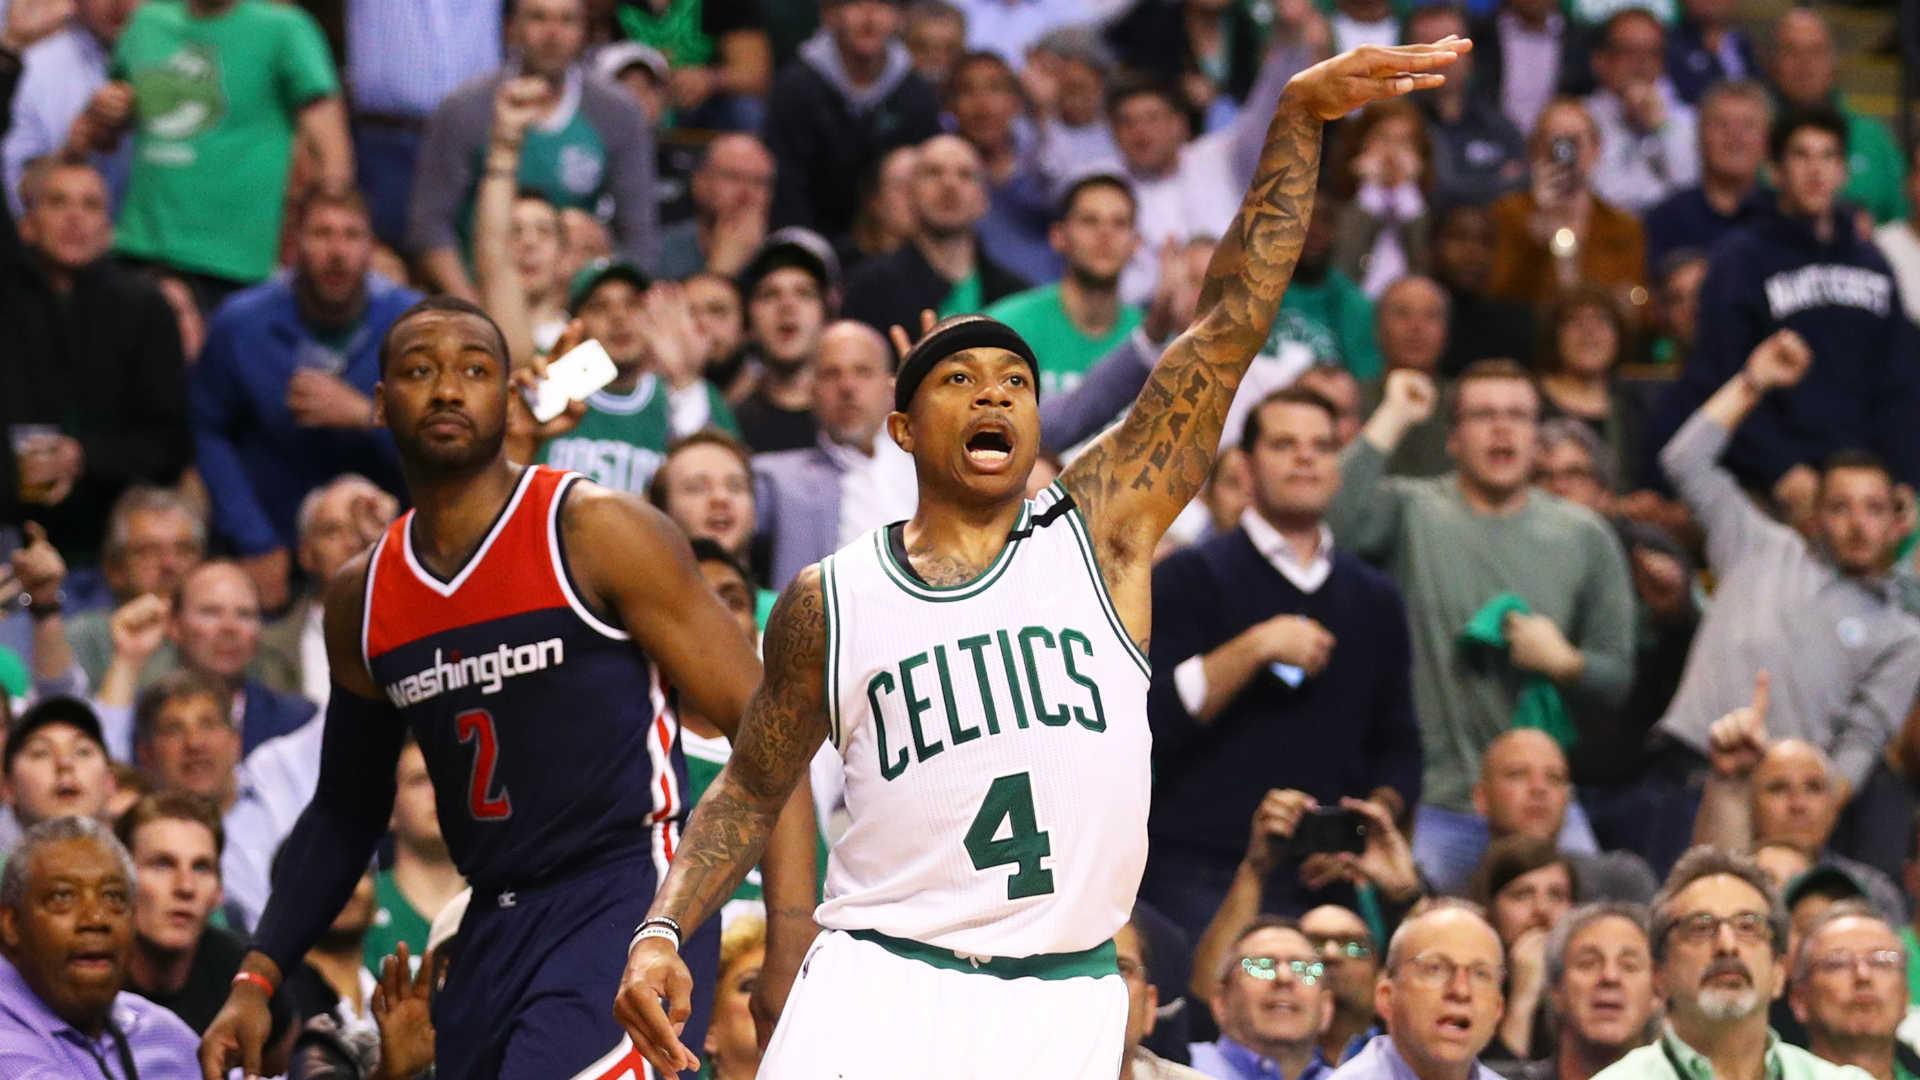 NBA playoffs 2017: Wizards vs. Celtics score and live updates